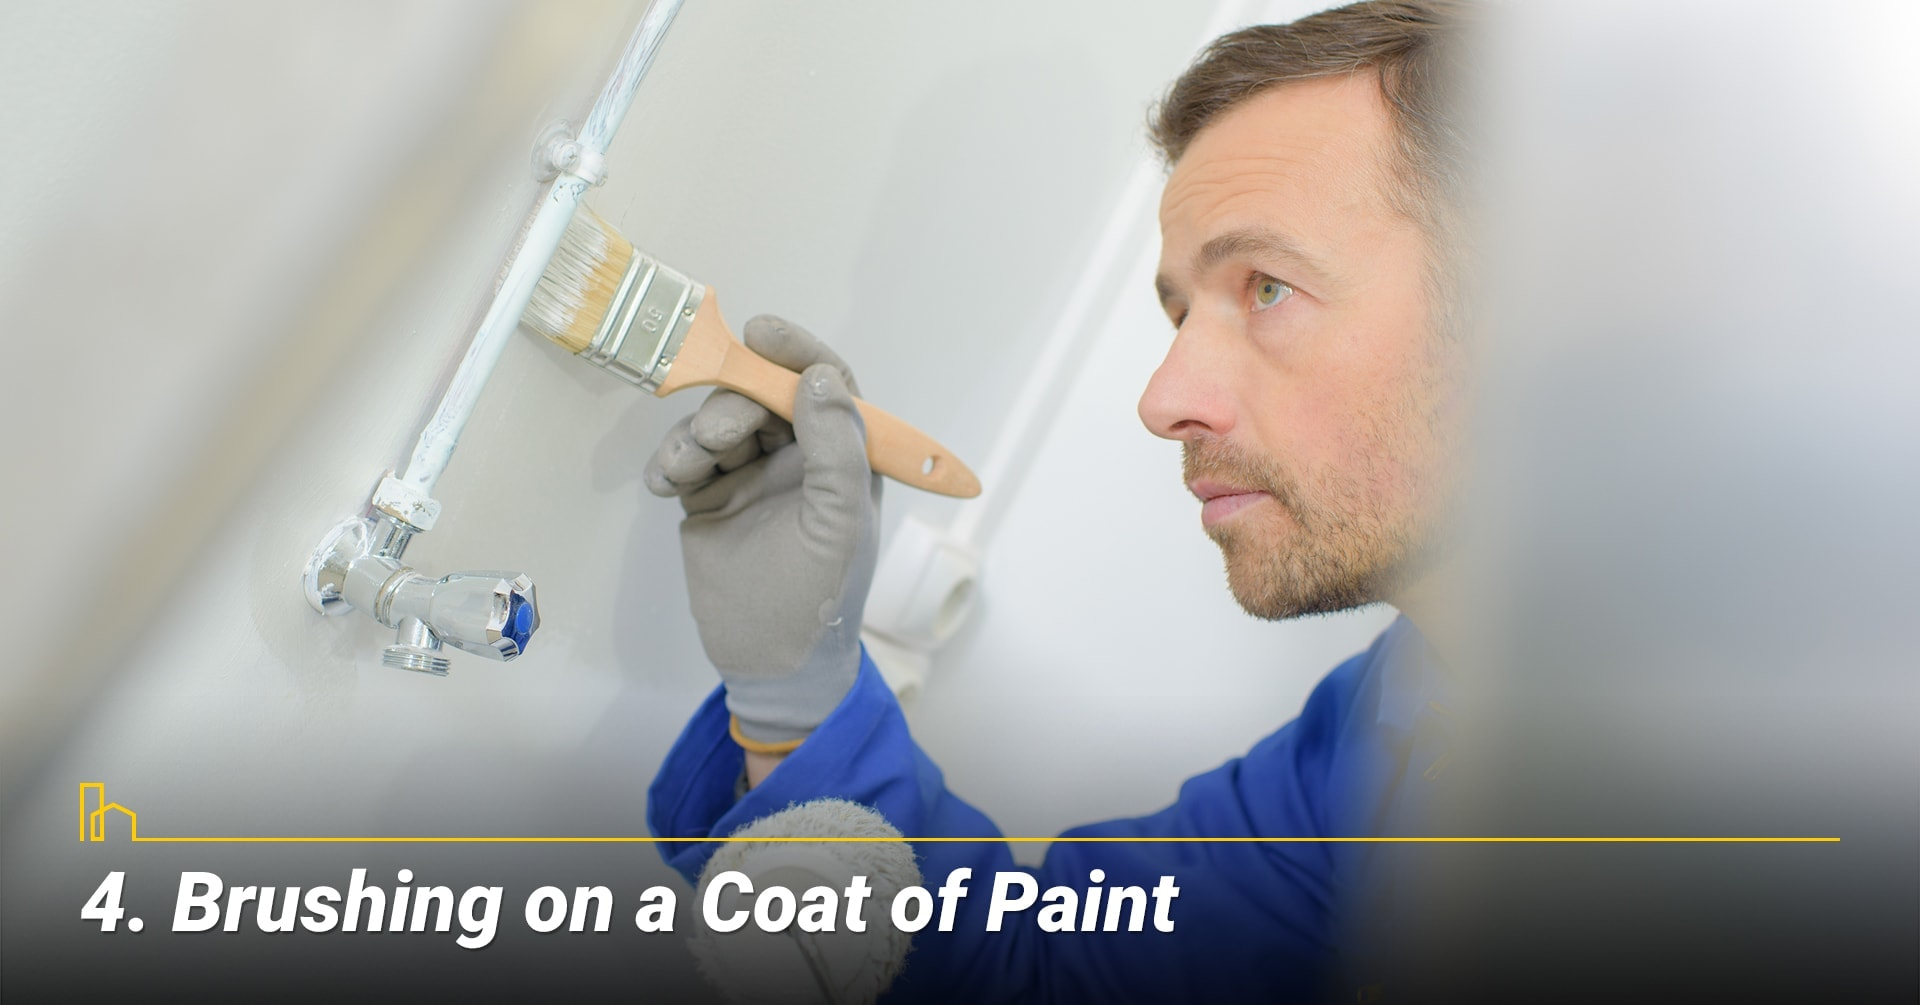 Brushing on a Coat of Paint, a new coat of paint